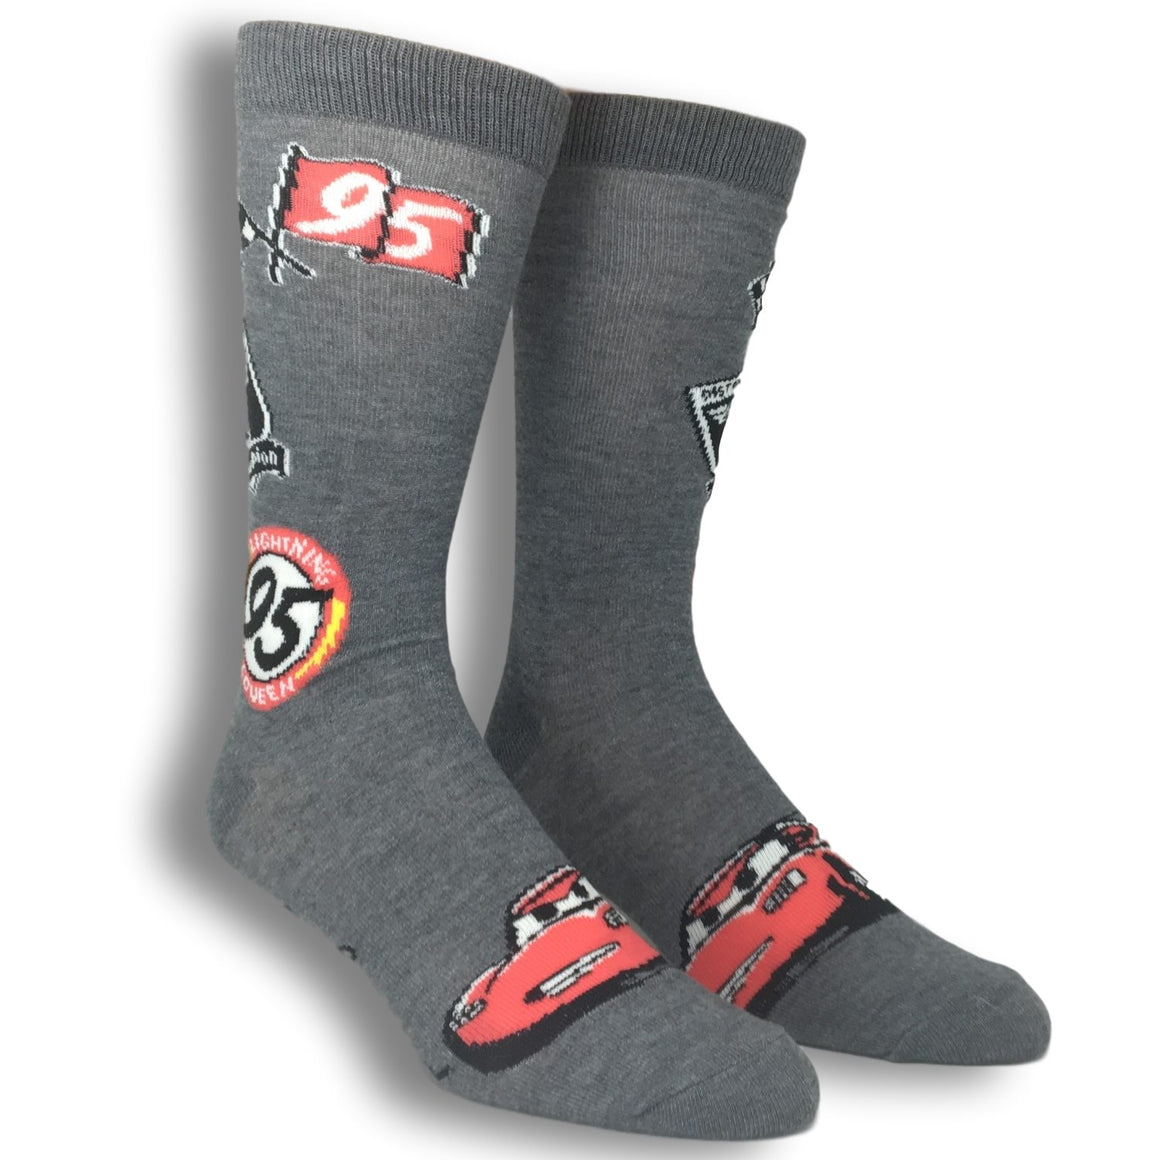 2 Pair Pack Disney Pixar Cars Classic Socks - The Sock Spot